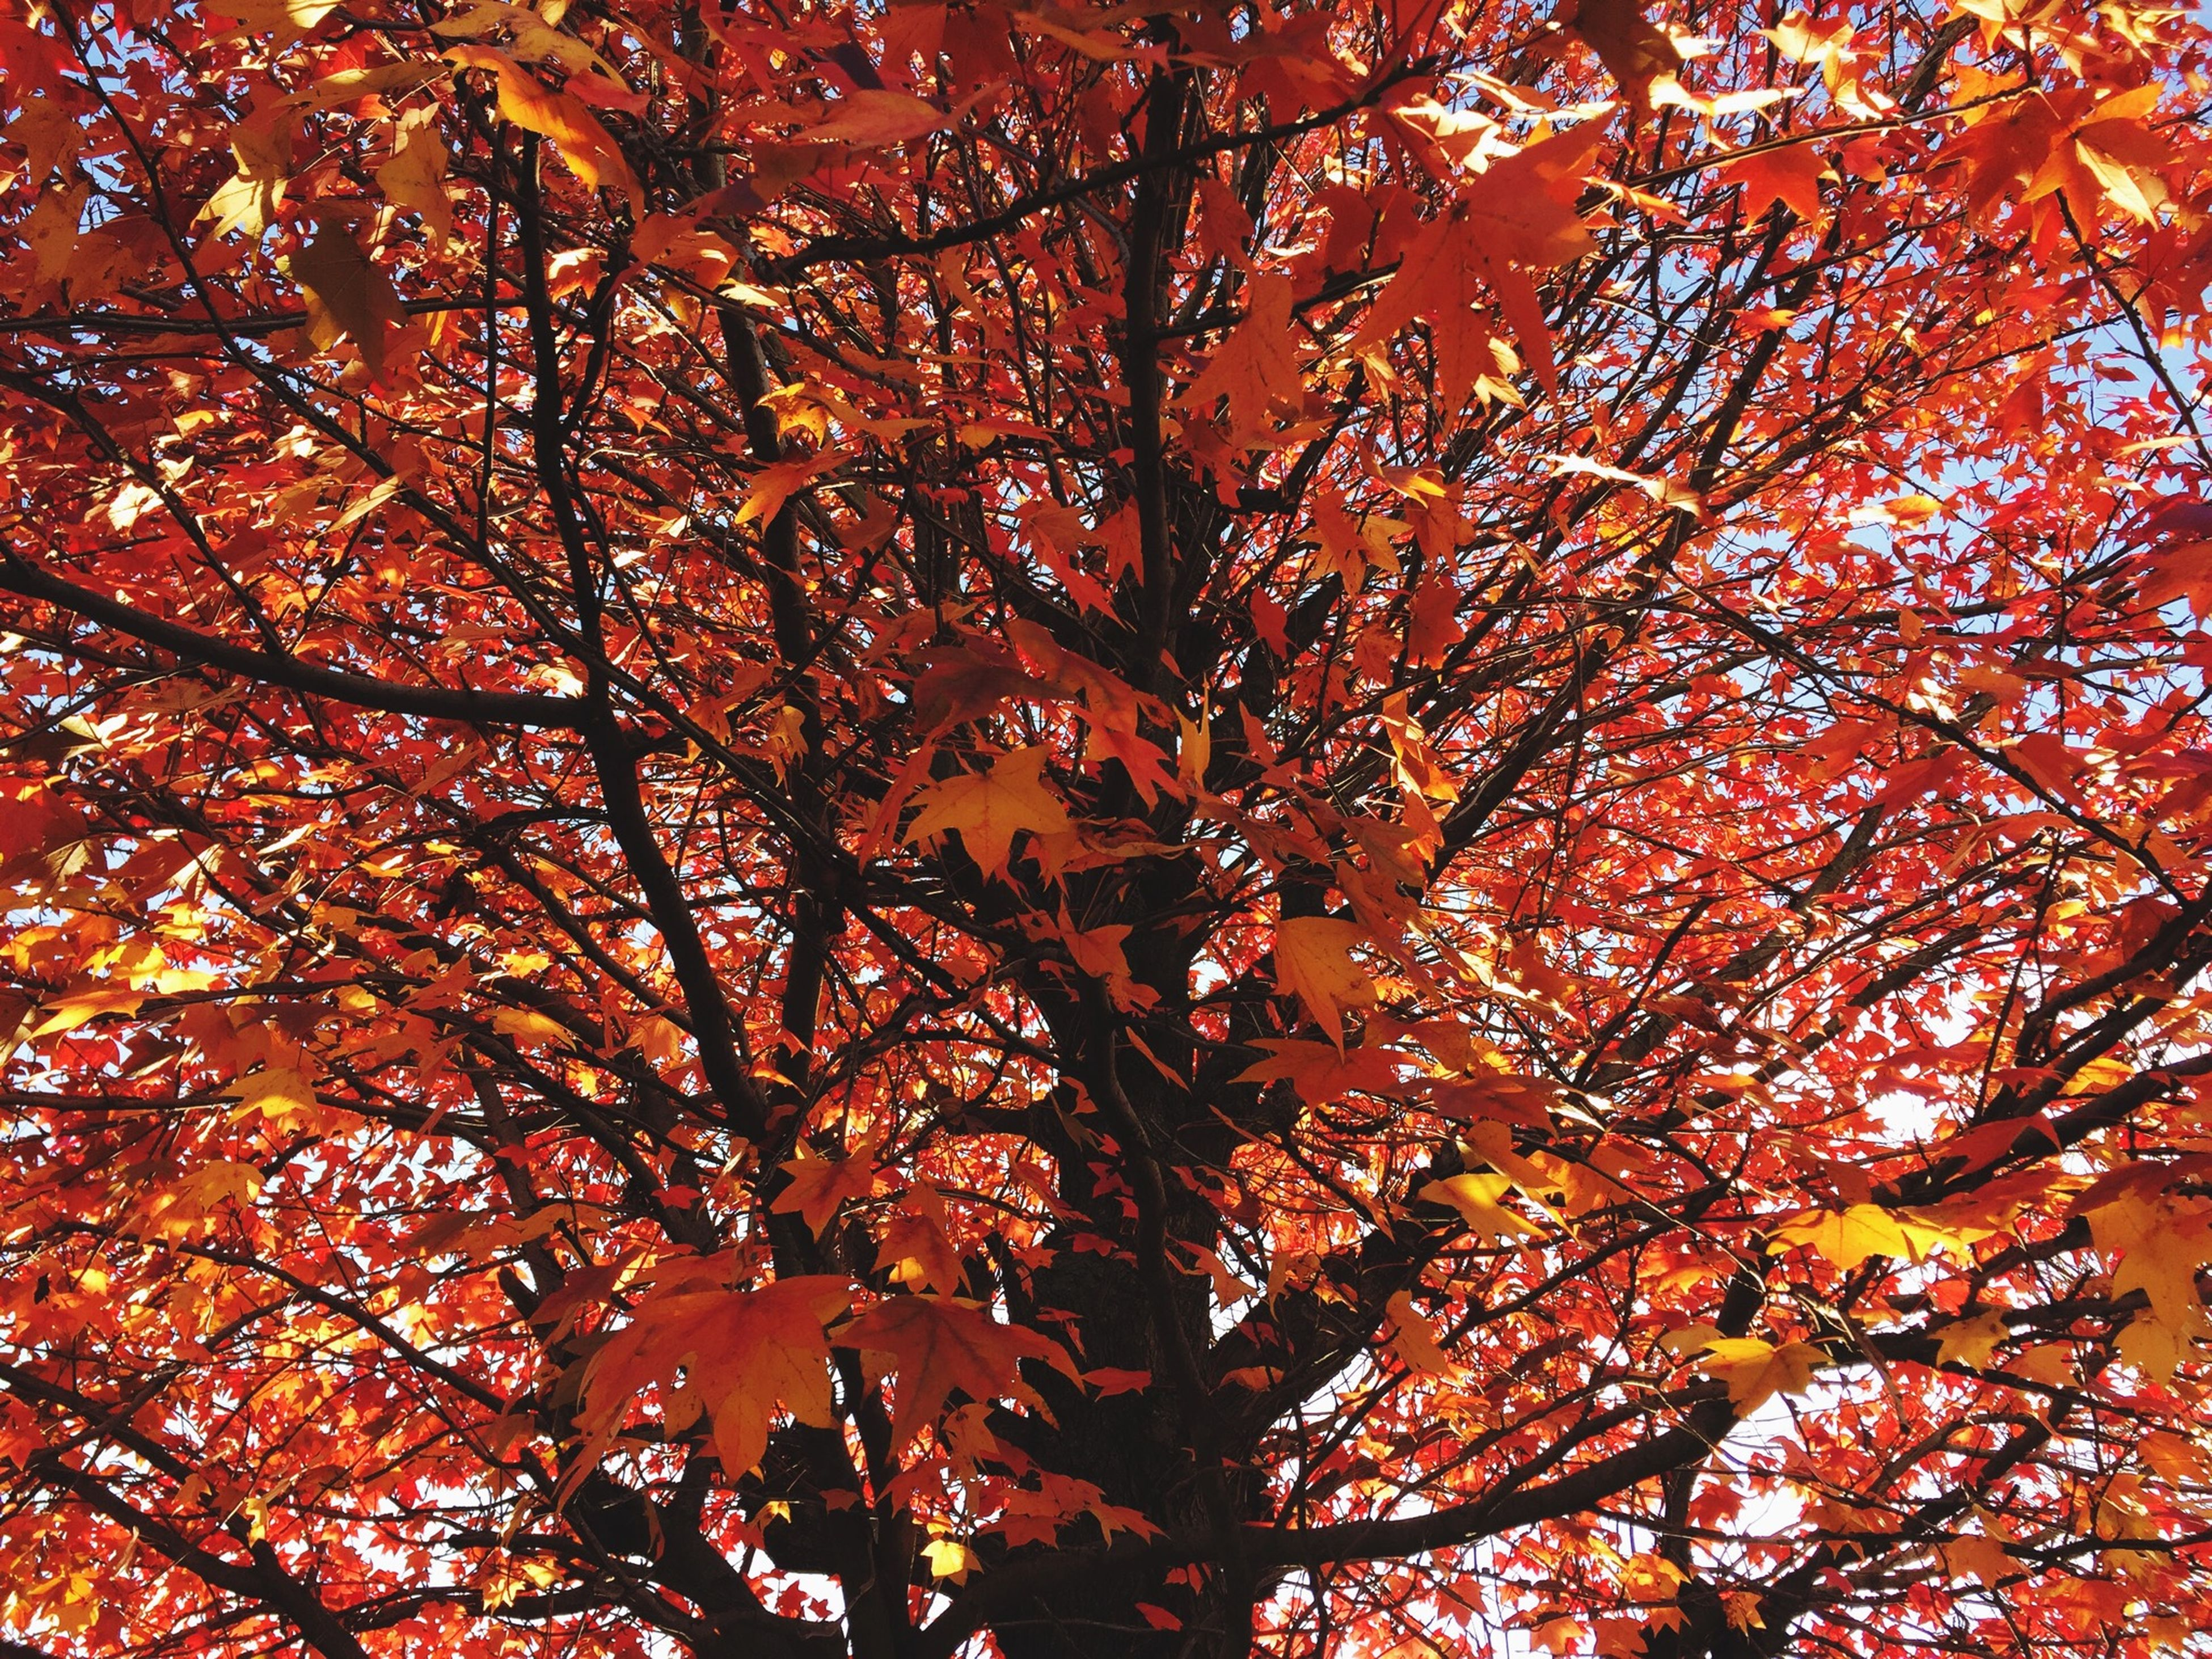 tree, autumn, branch, low angle view, change, season, growth, full frame, nature, leaf, beauty in nature, backgrounds, tranquility, orange color, day, outdoors, no people, red, scenics, sky